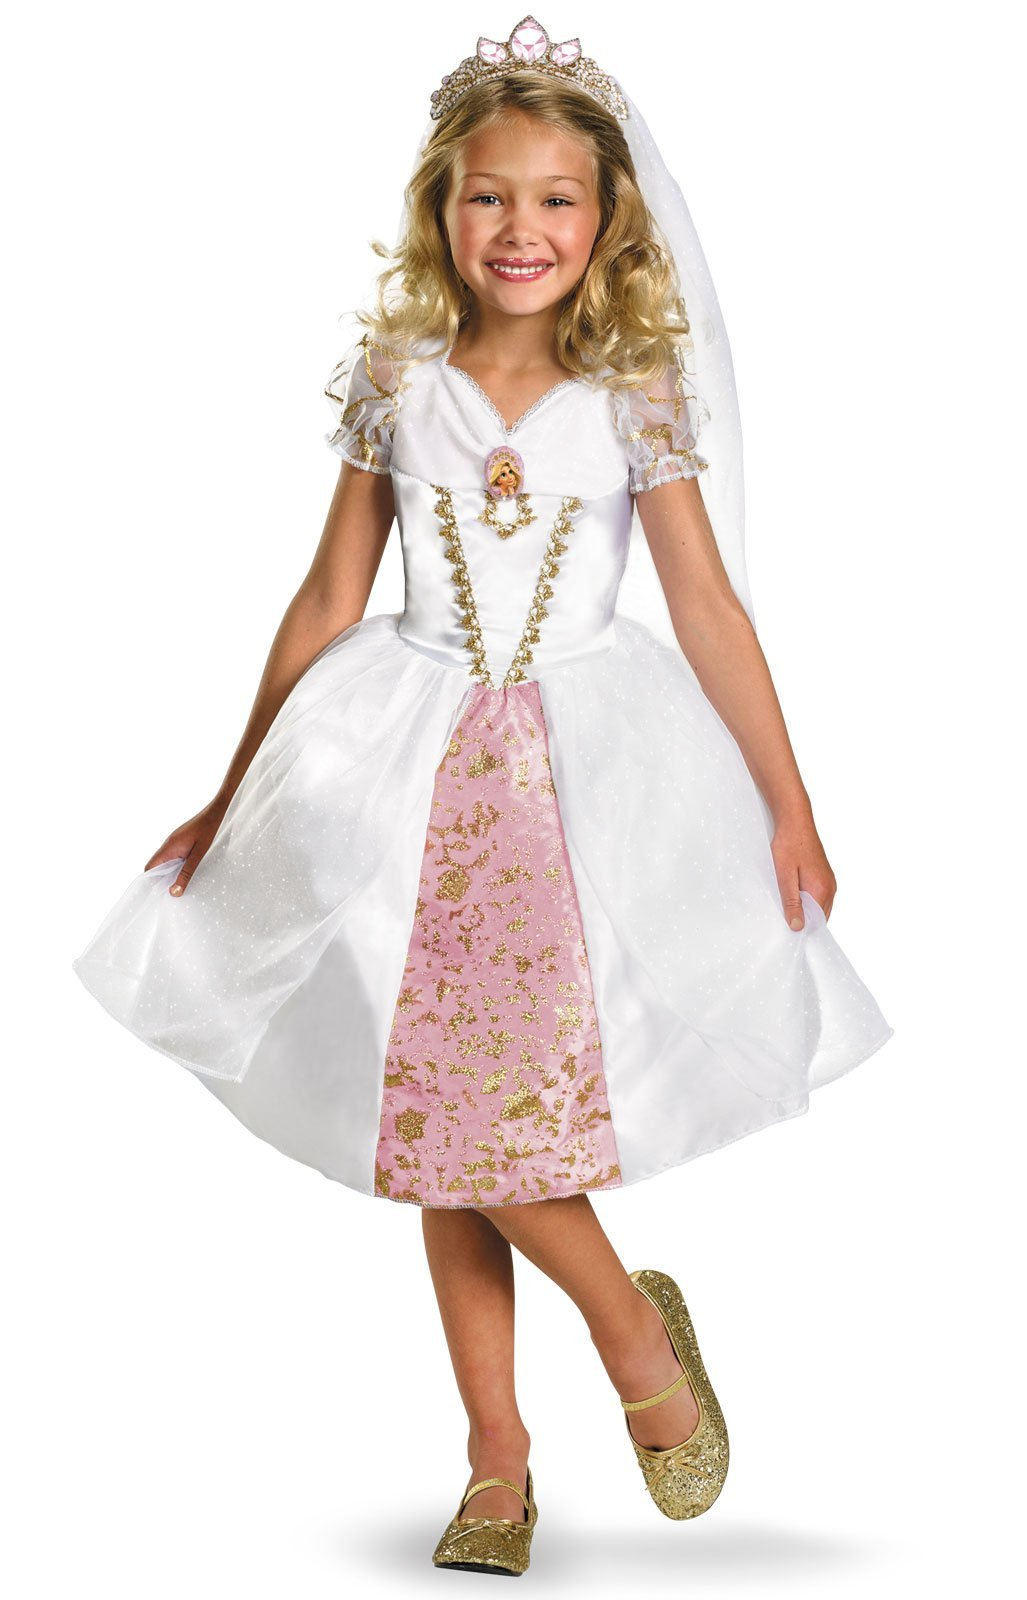 Rapunzel Wedding Gown Child Costume - Small by Disguise